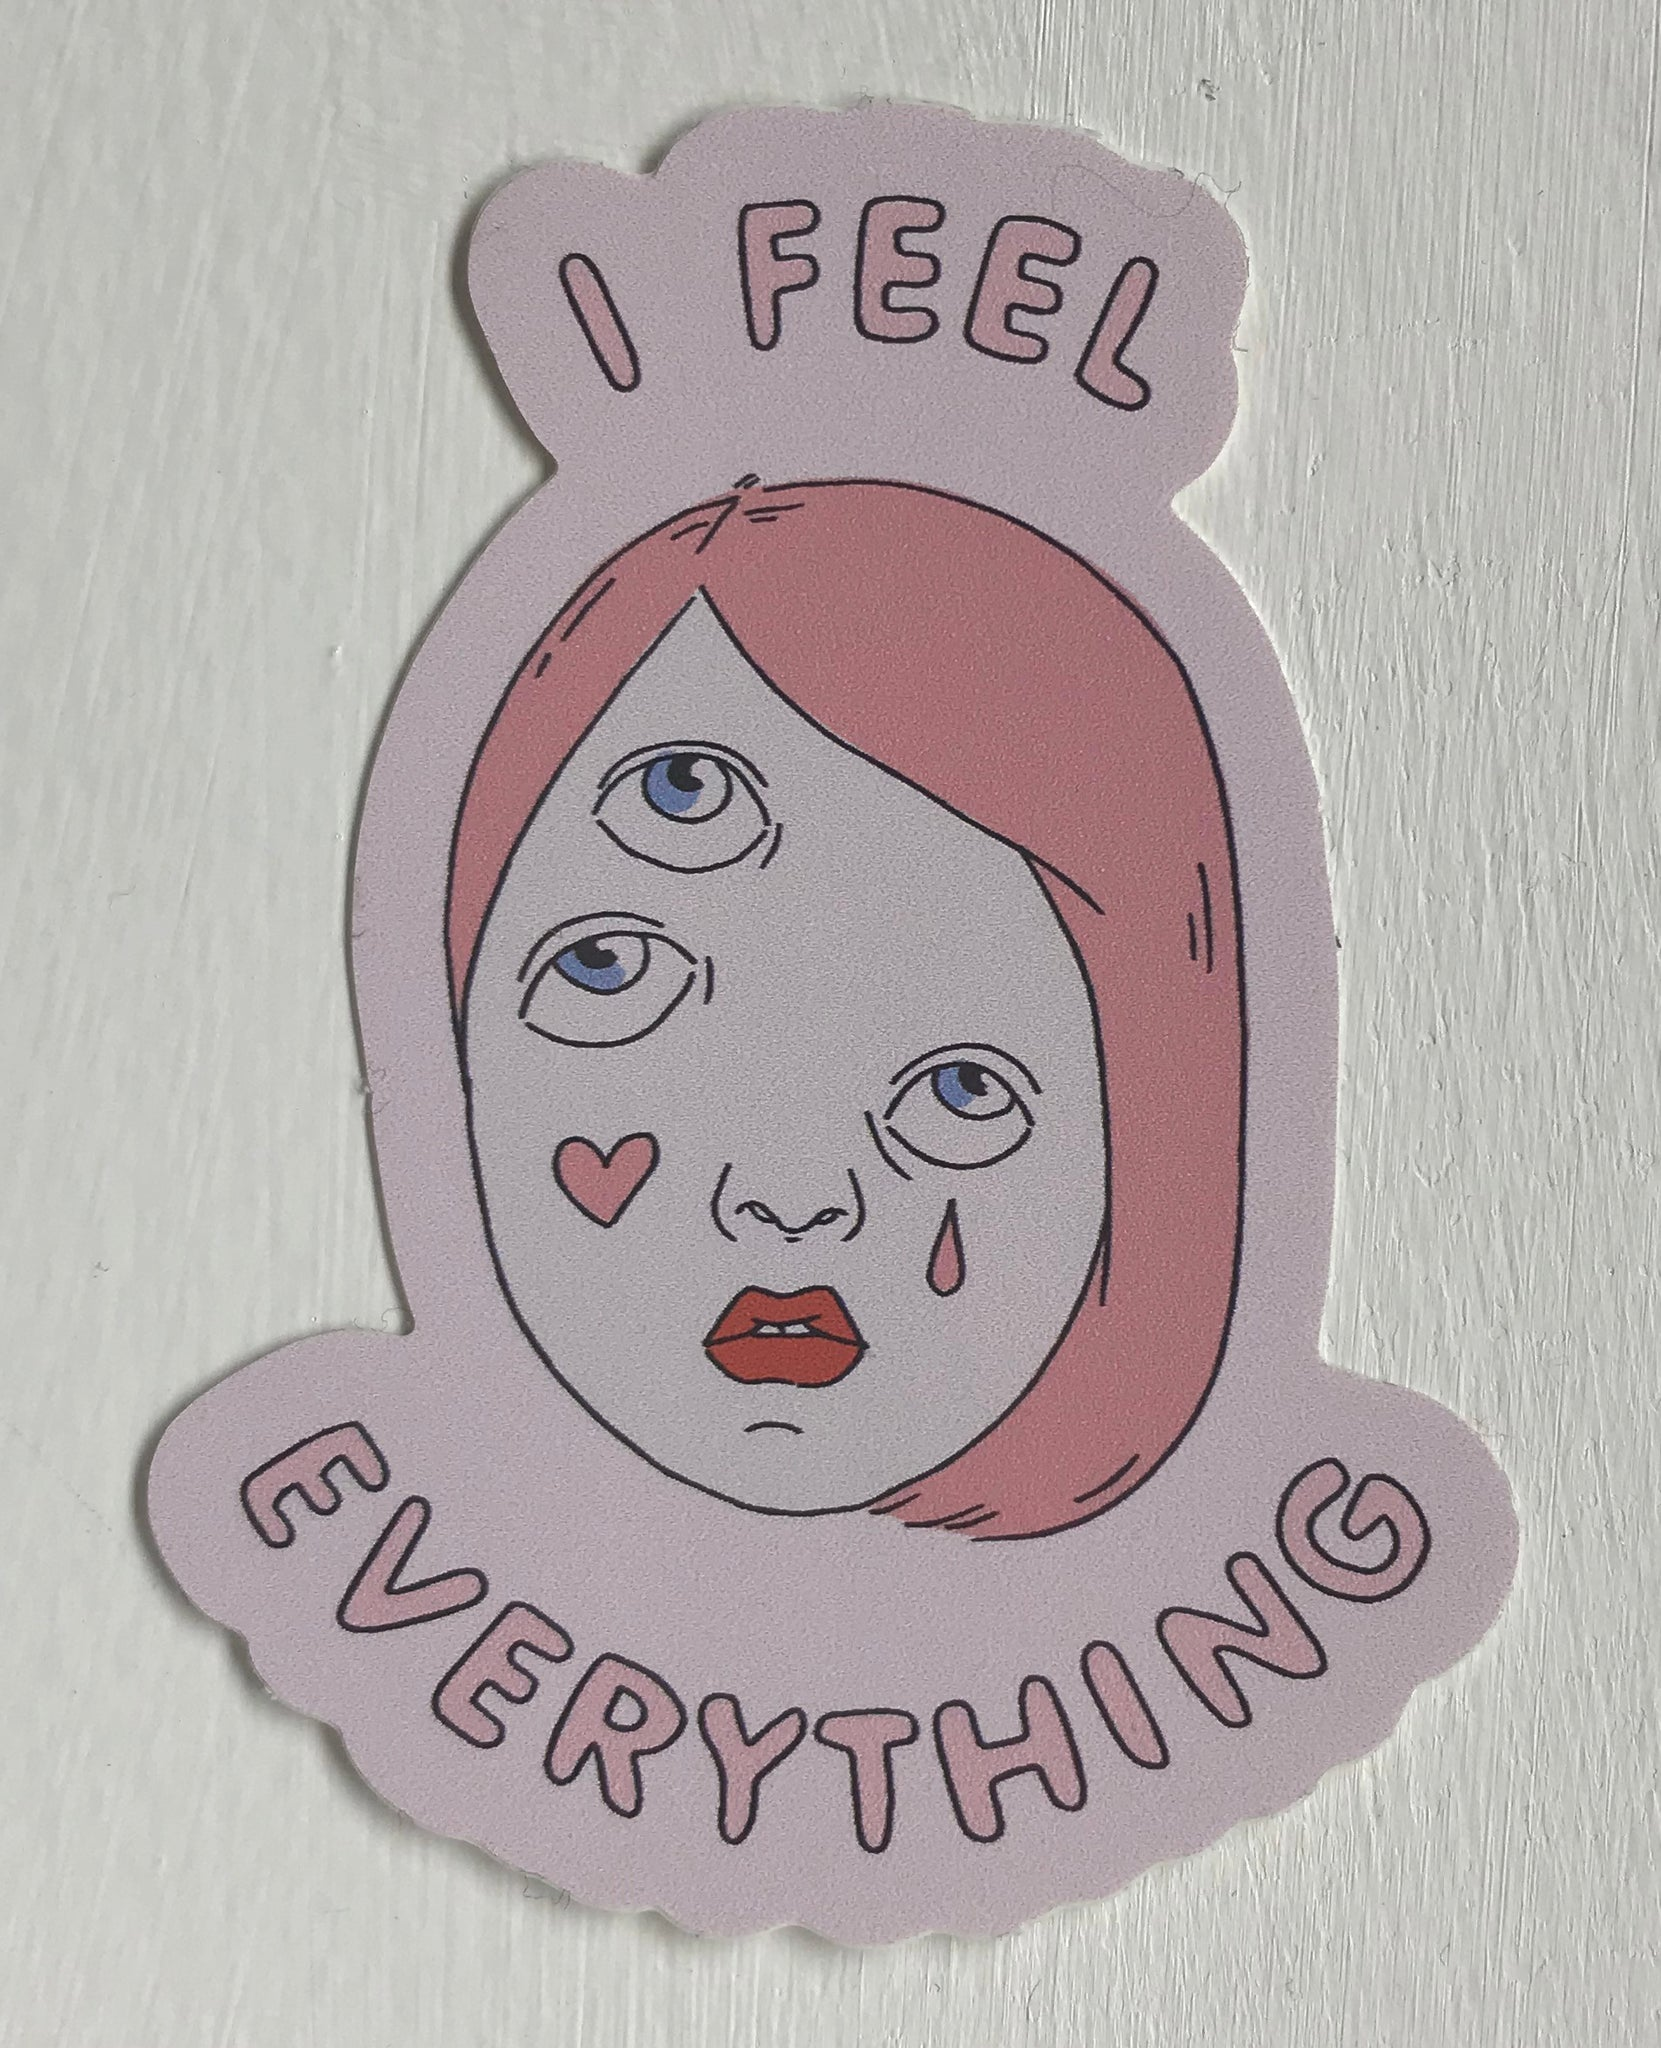 I Feel Everything Pink Sticker